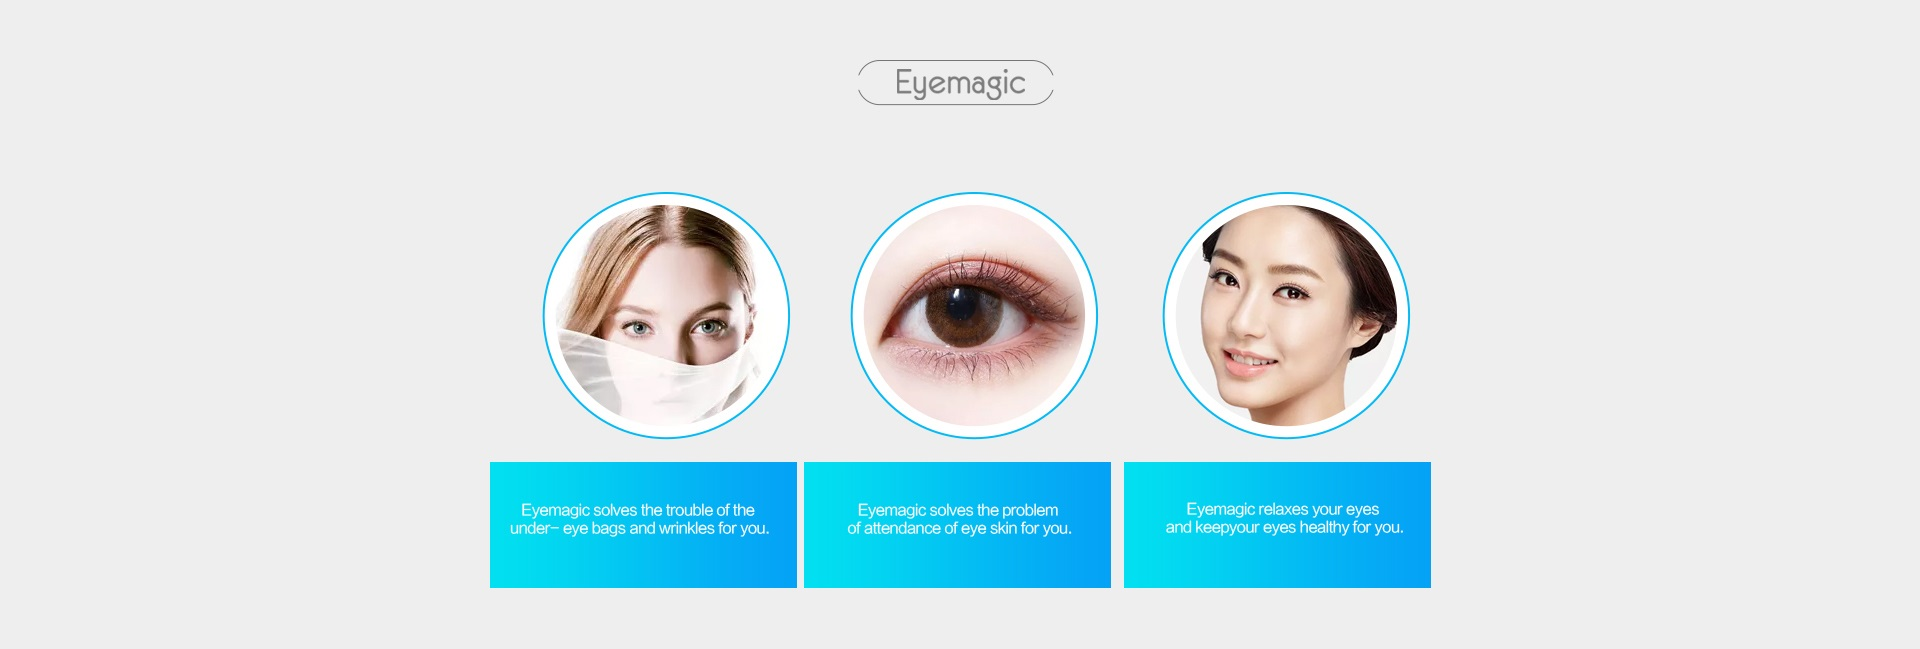 Most people blink more than once a day. Excessive use of eyes up to tens of thousands of times, 